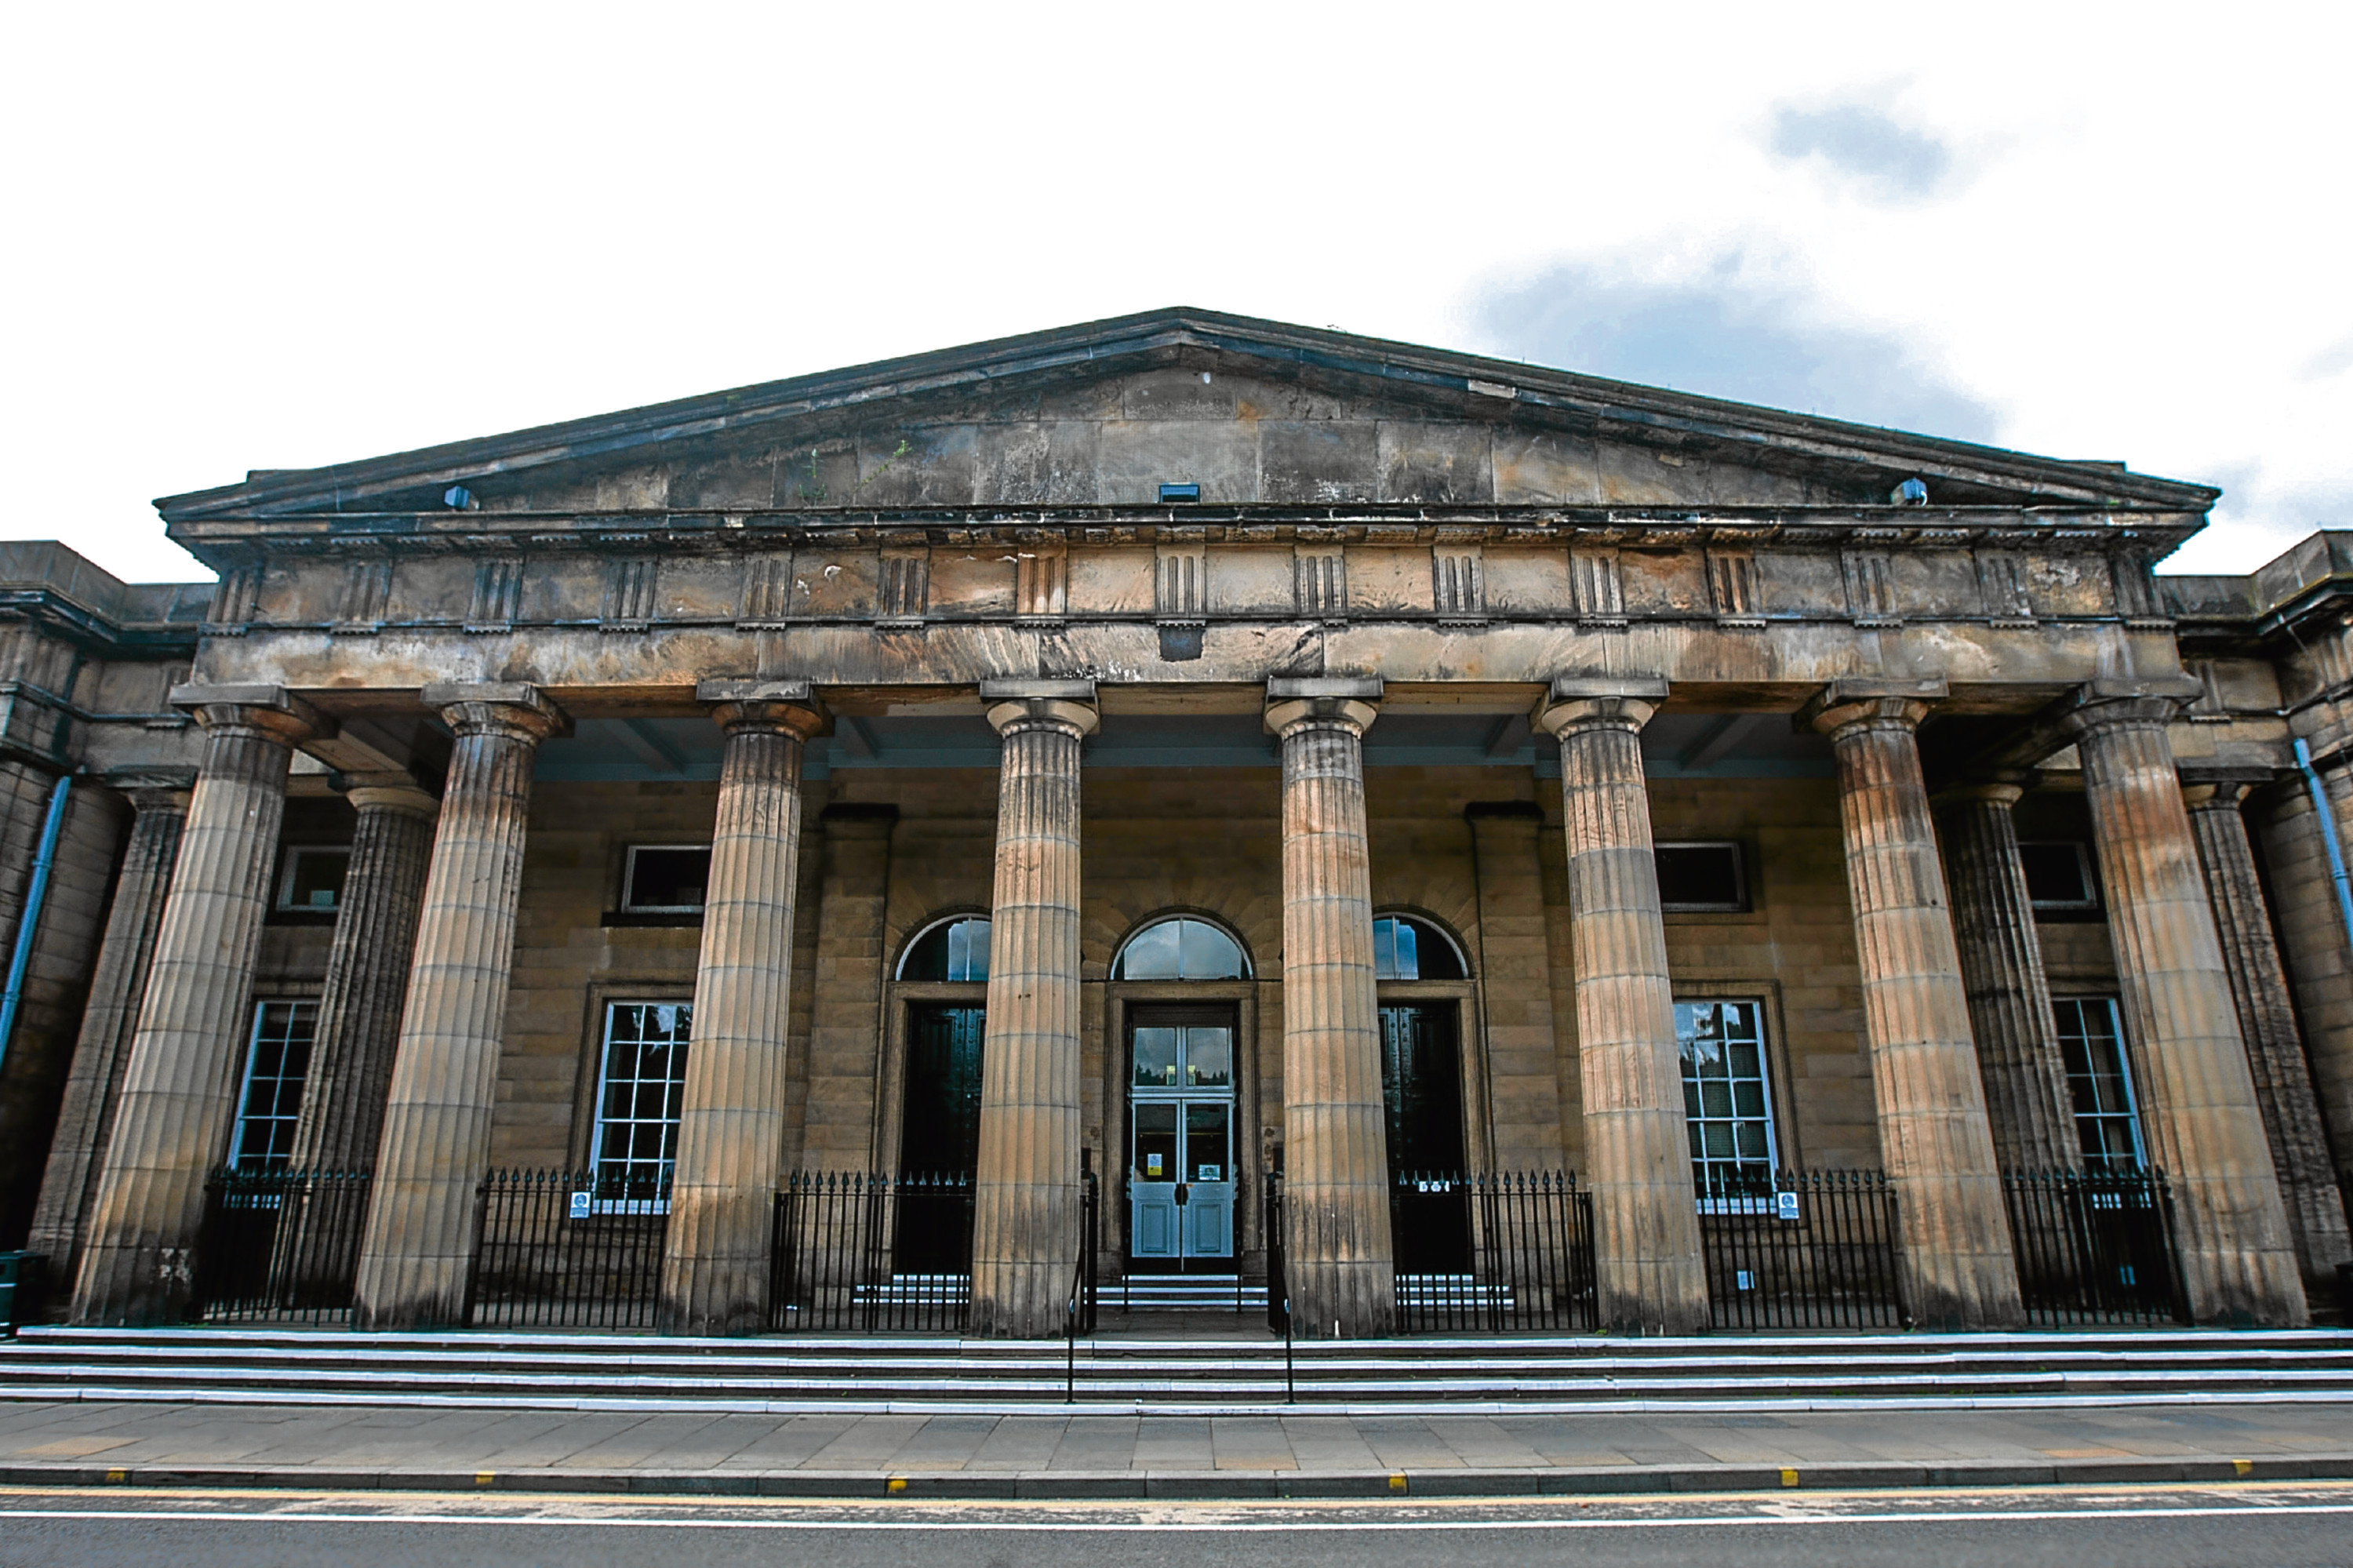 Building exterior of Perth Sheriff Court, Tay Street, Perth